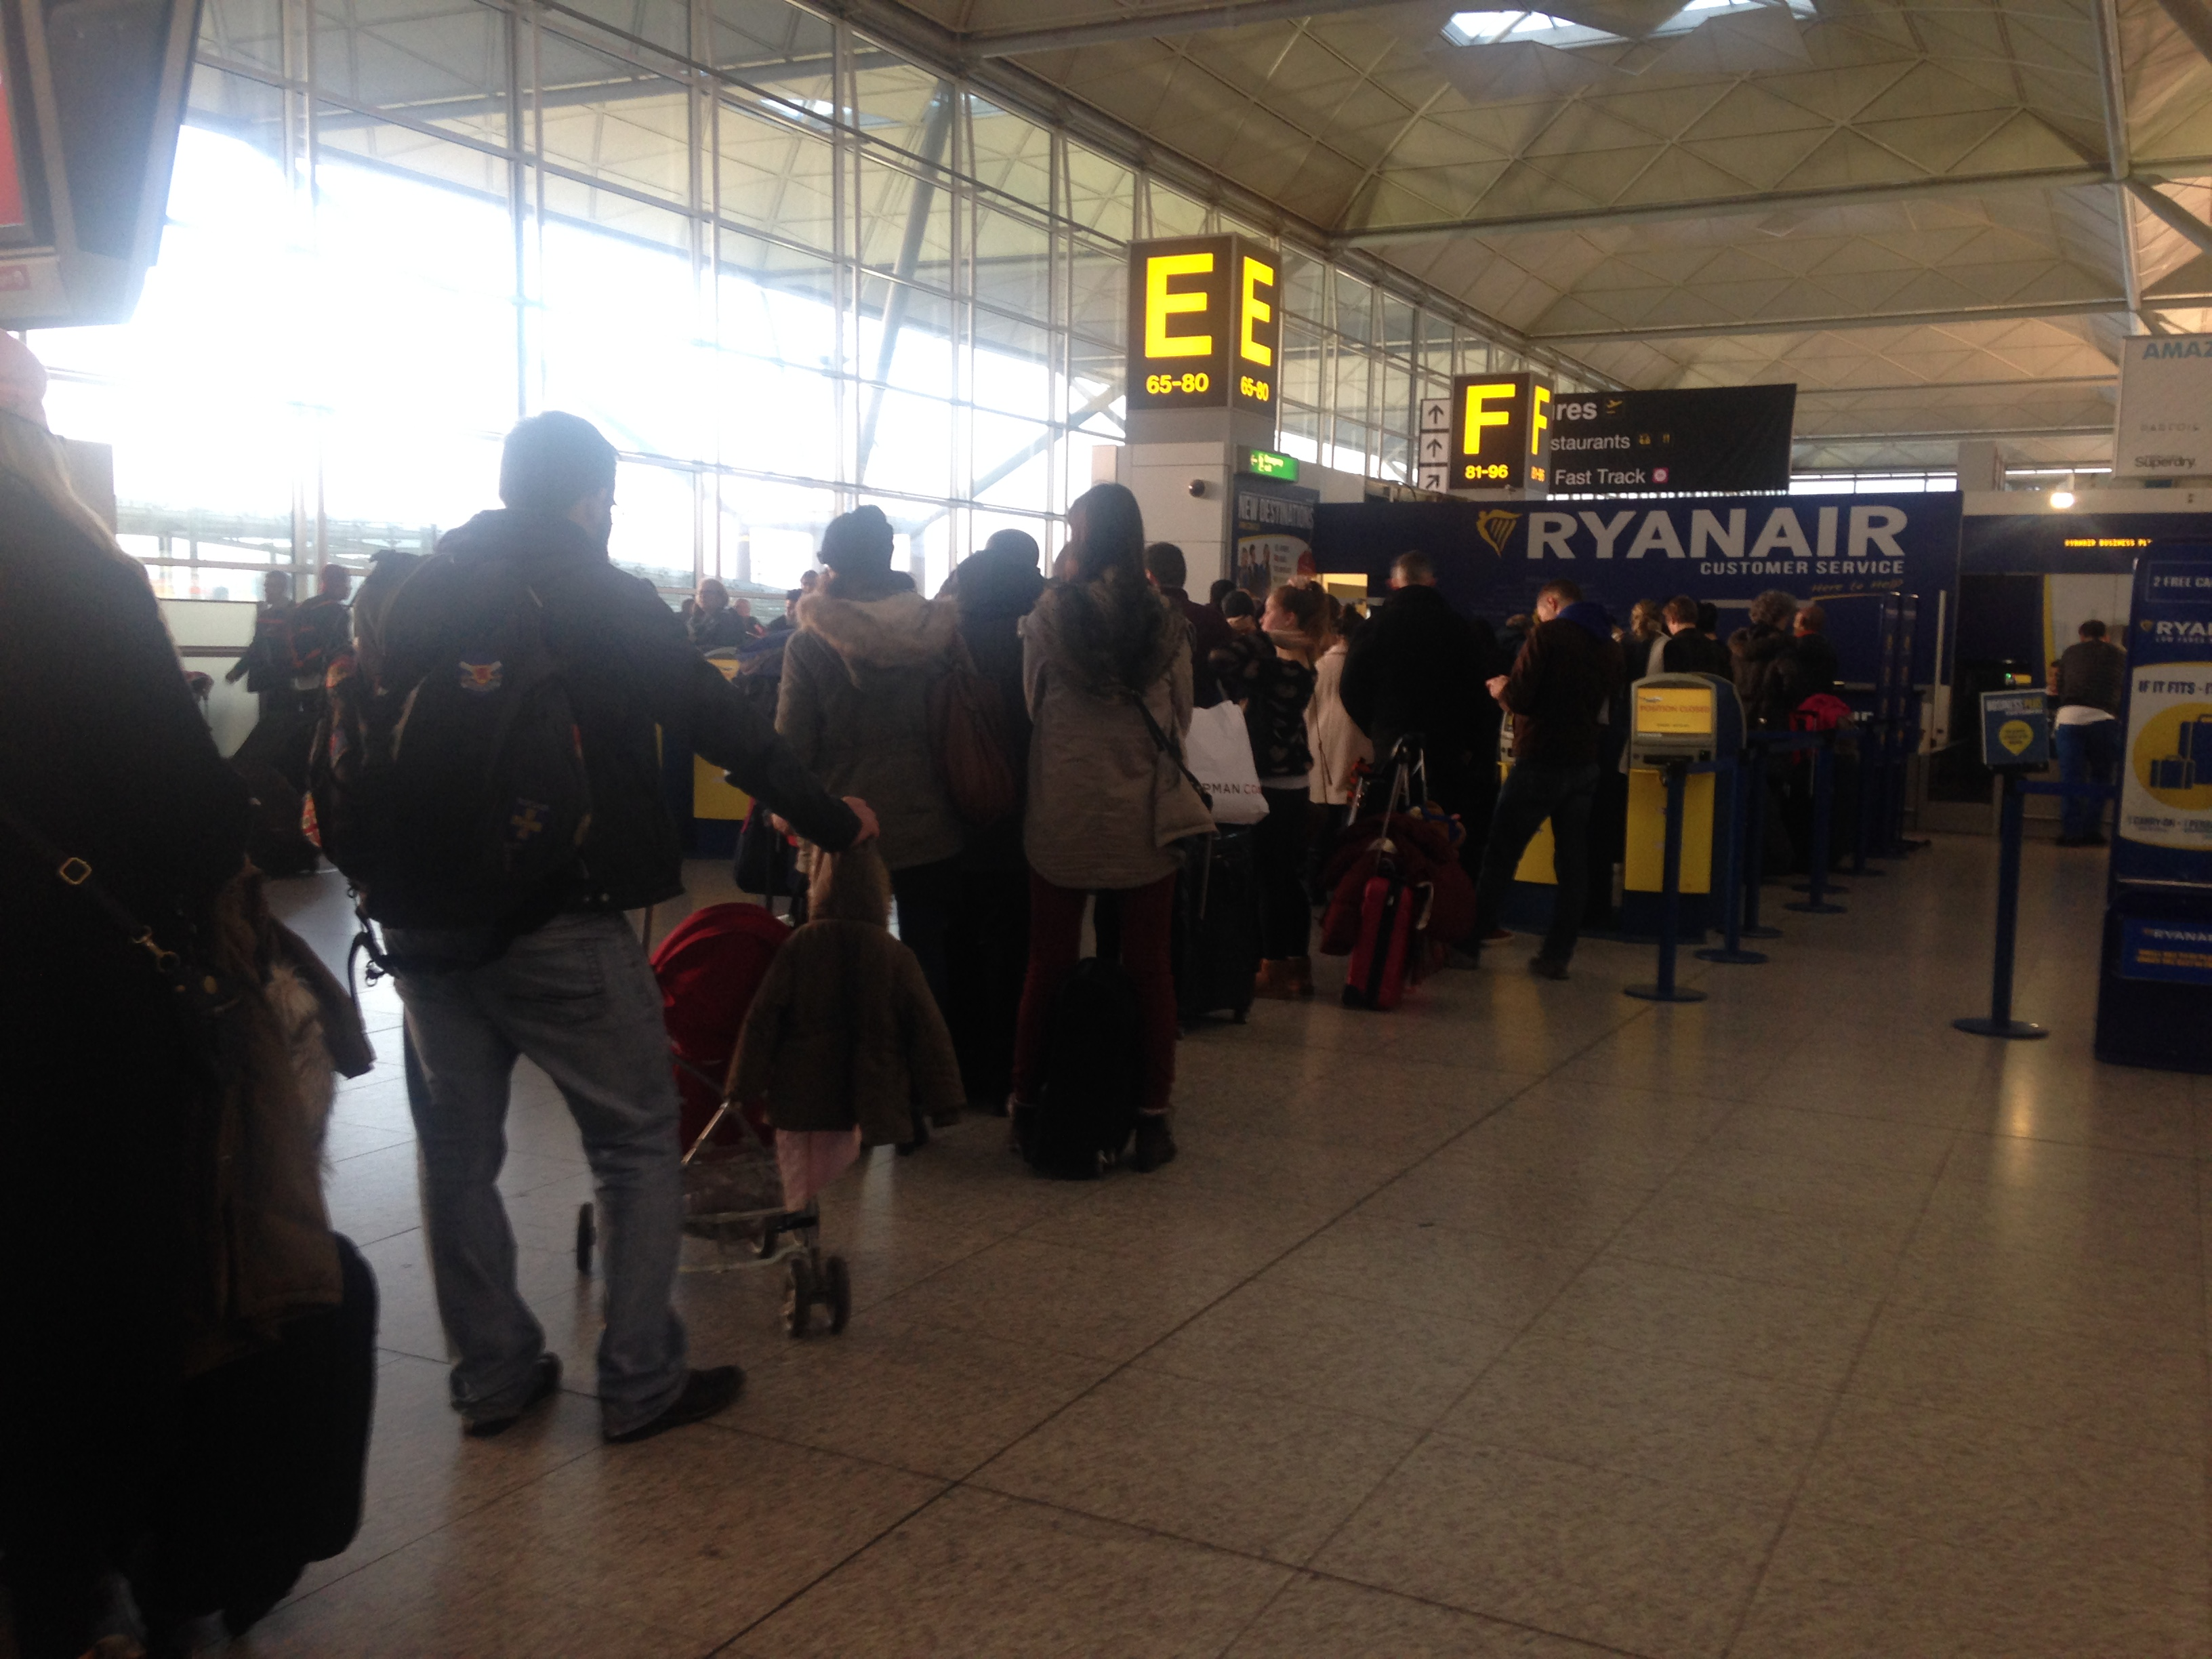 London stansted airport customer reviews skytrax view the photos kristyandbryce Choice Image